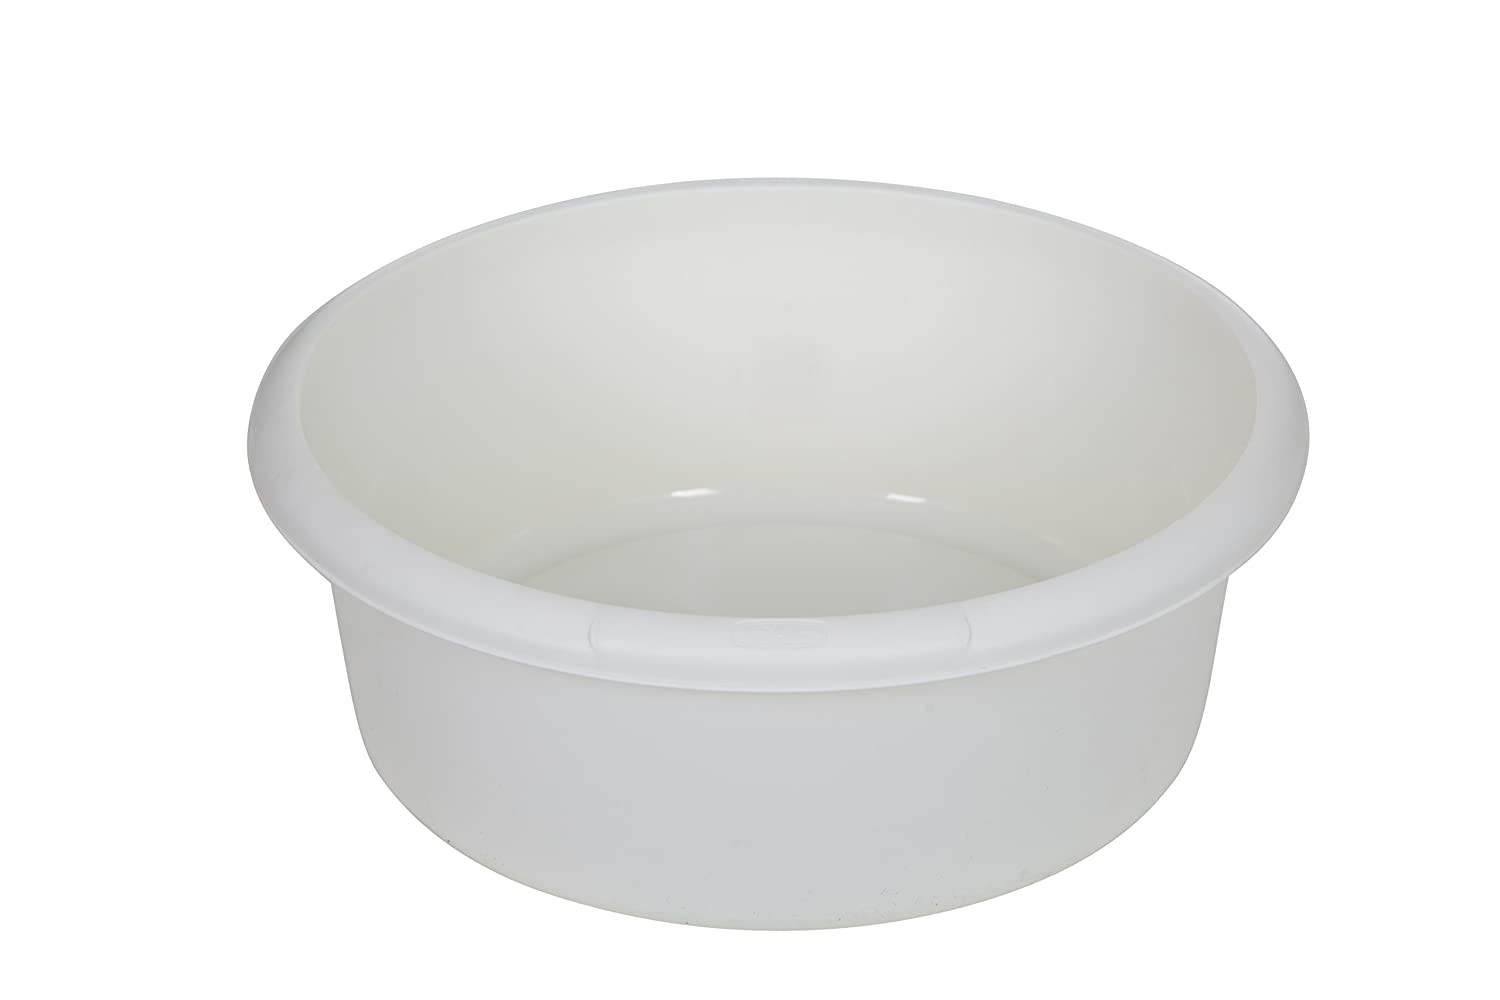 Amazon.com: Whitefurze Plastic Round Washing Up Kitchen Sink Bowl ...